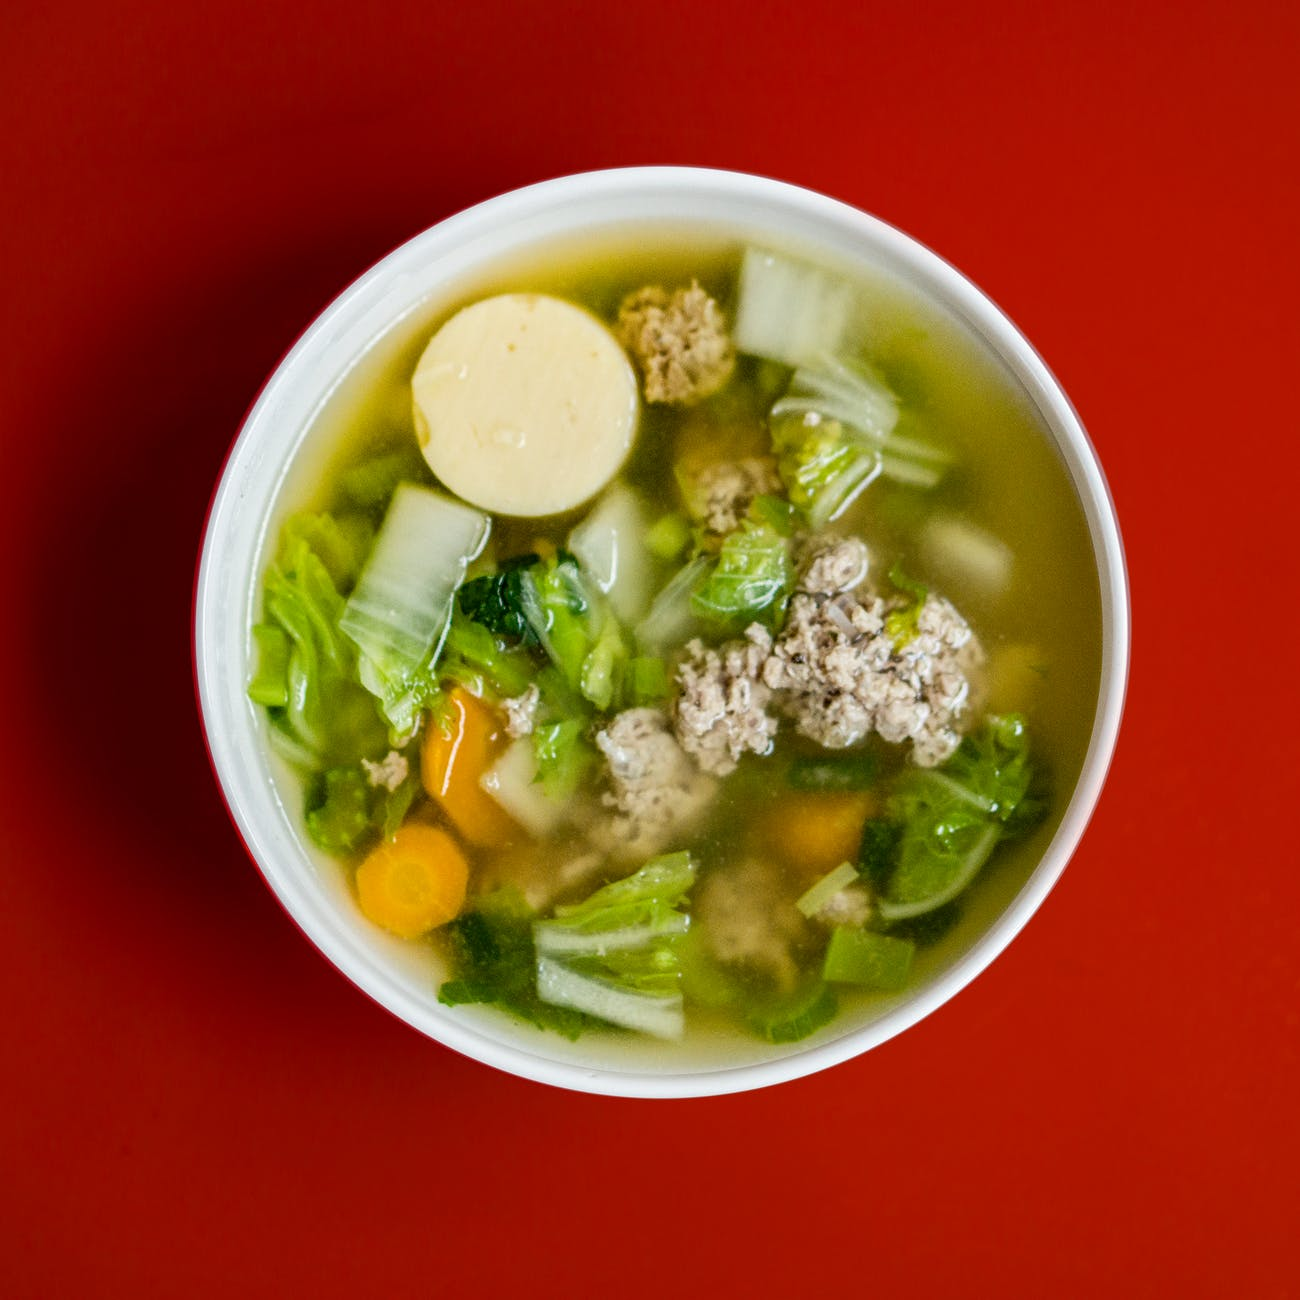 Cabbage Soup Diet – Is It For You?